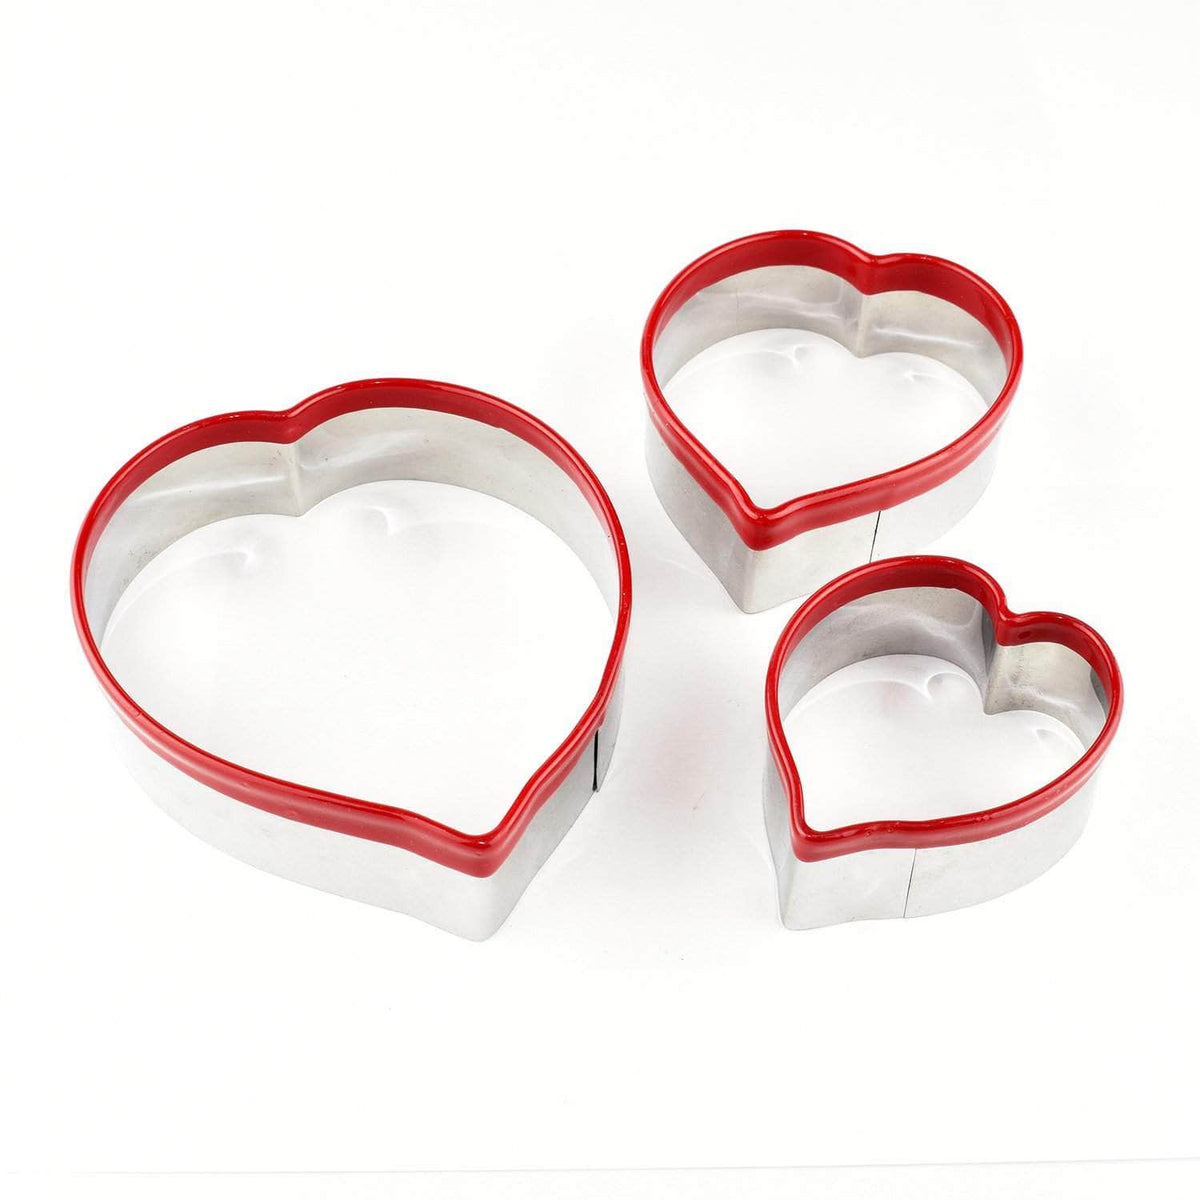 *New* Heart cookie cutters, set of 3